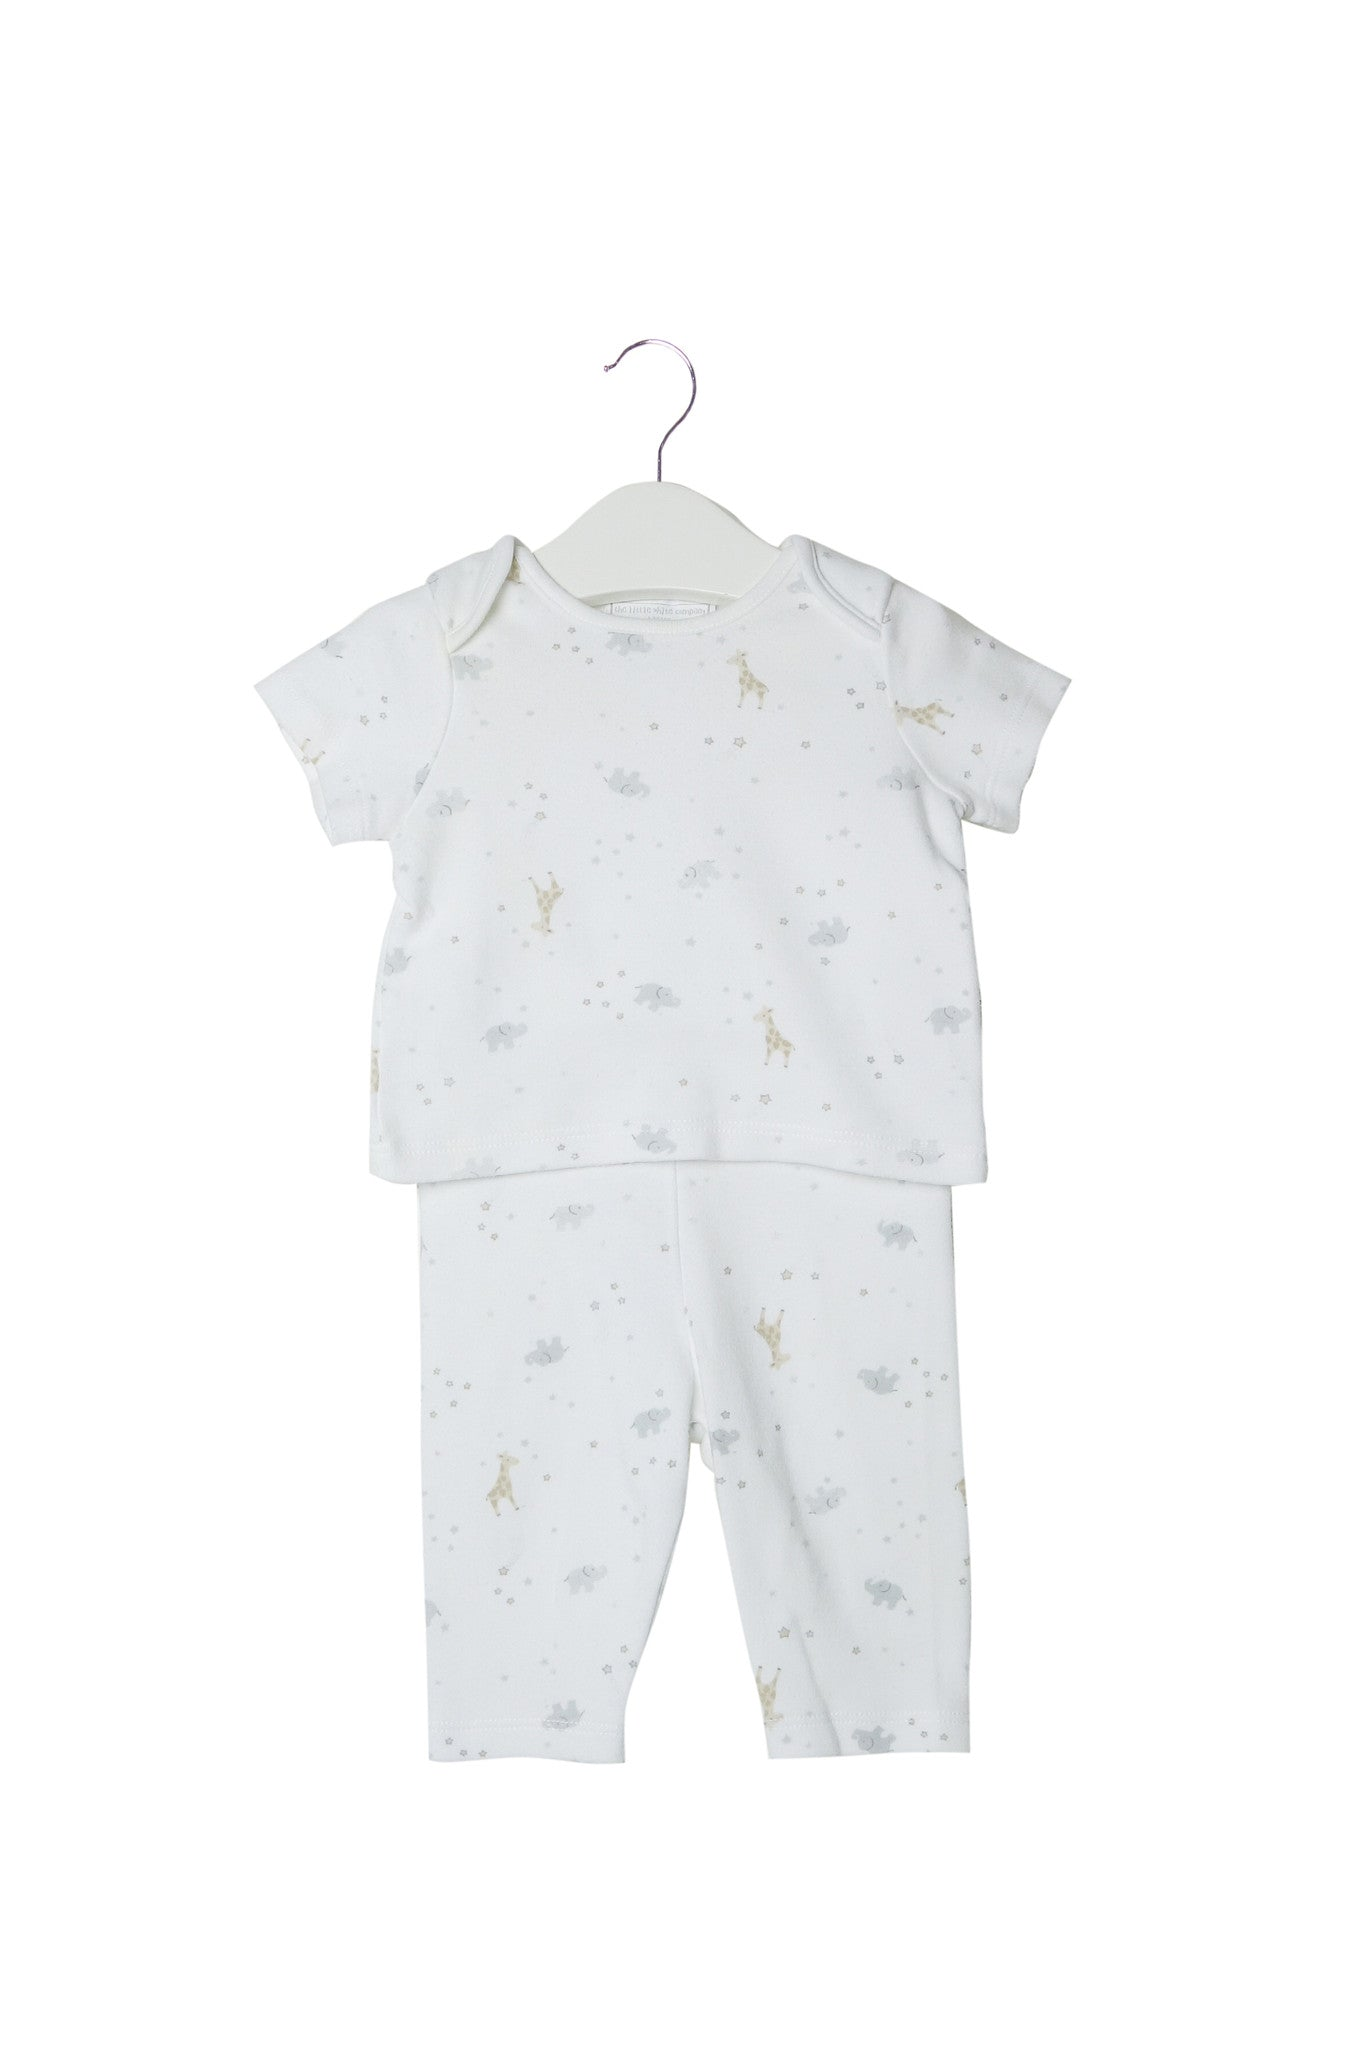 10002767 The Little White Company Baby~Pyjamas 0-3M at Retykle